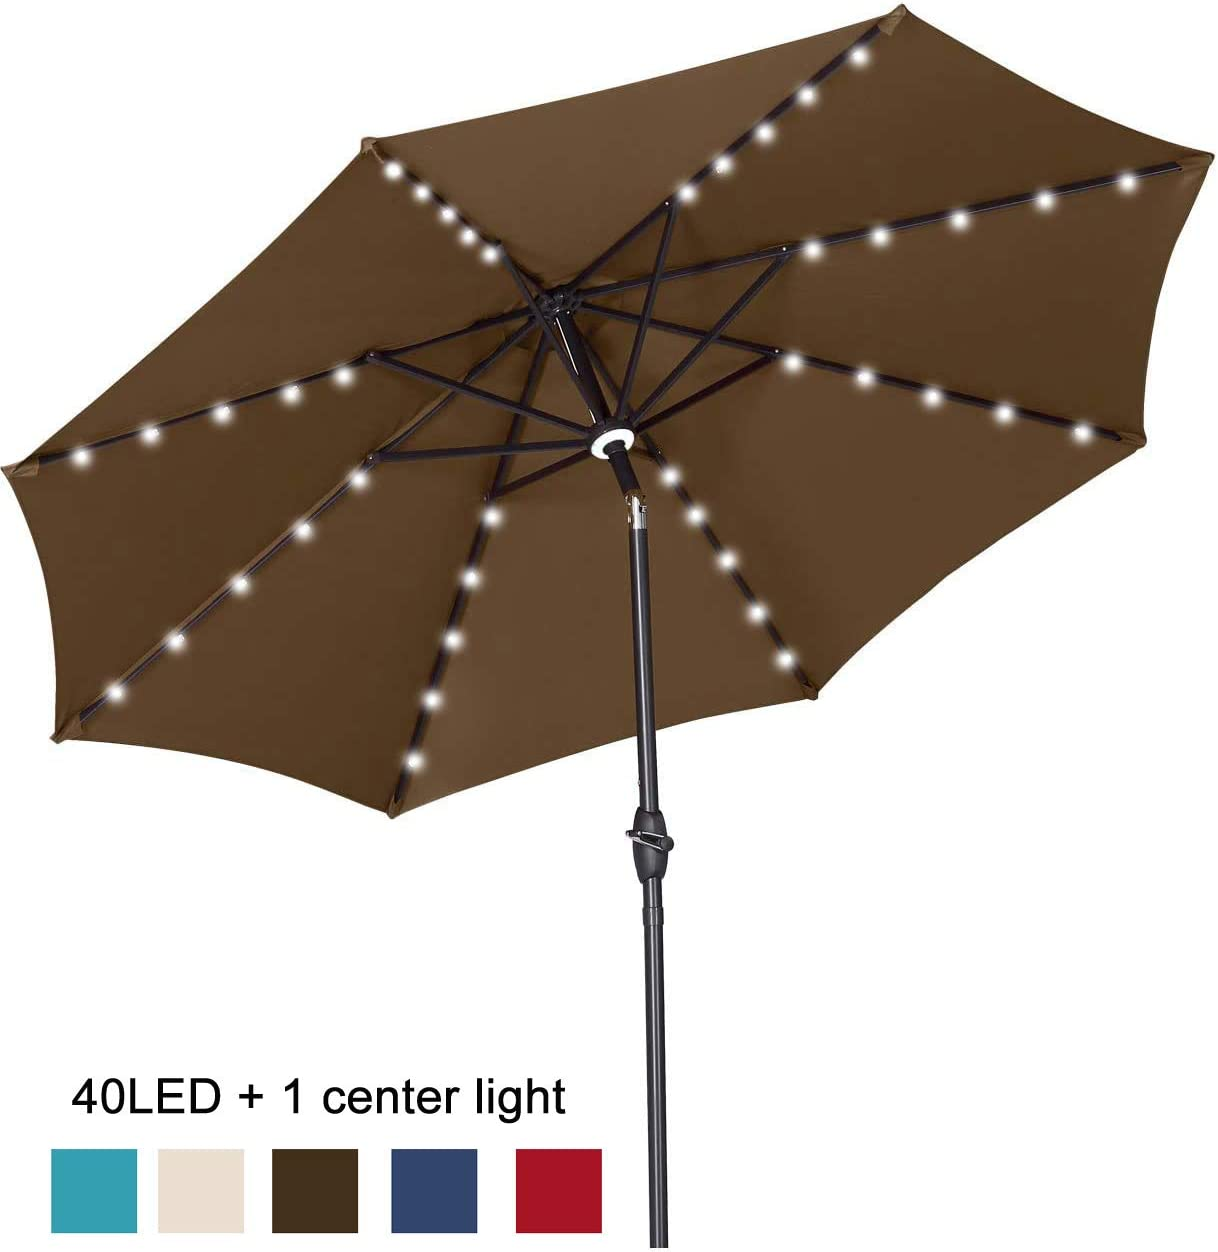 GDY 10Ft Patio Umbrella Solar Powered 40 LED Lighted Aluminum Outdoor Table Market Umbrella with Tilt and Crank Coffee